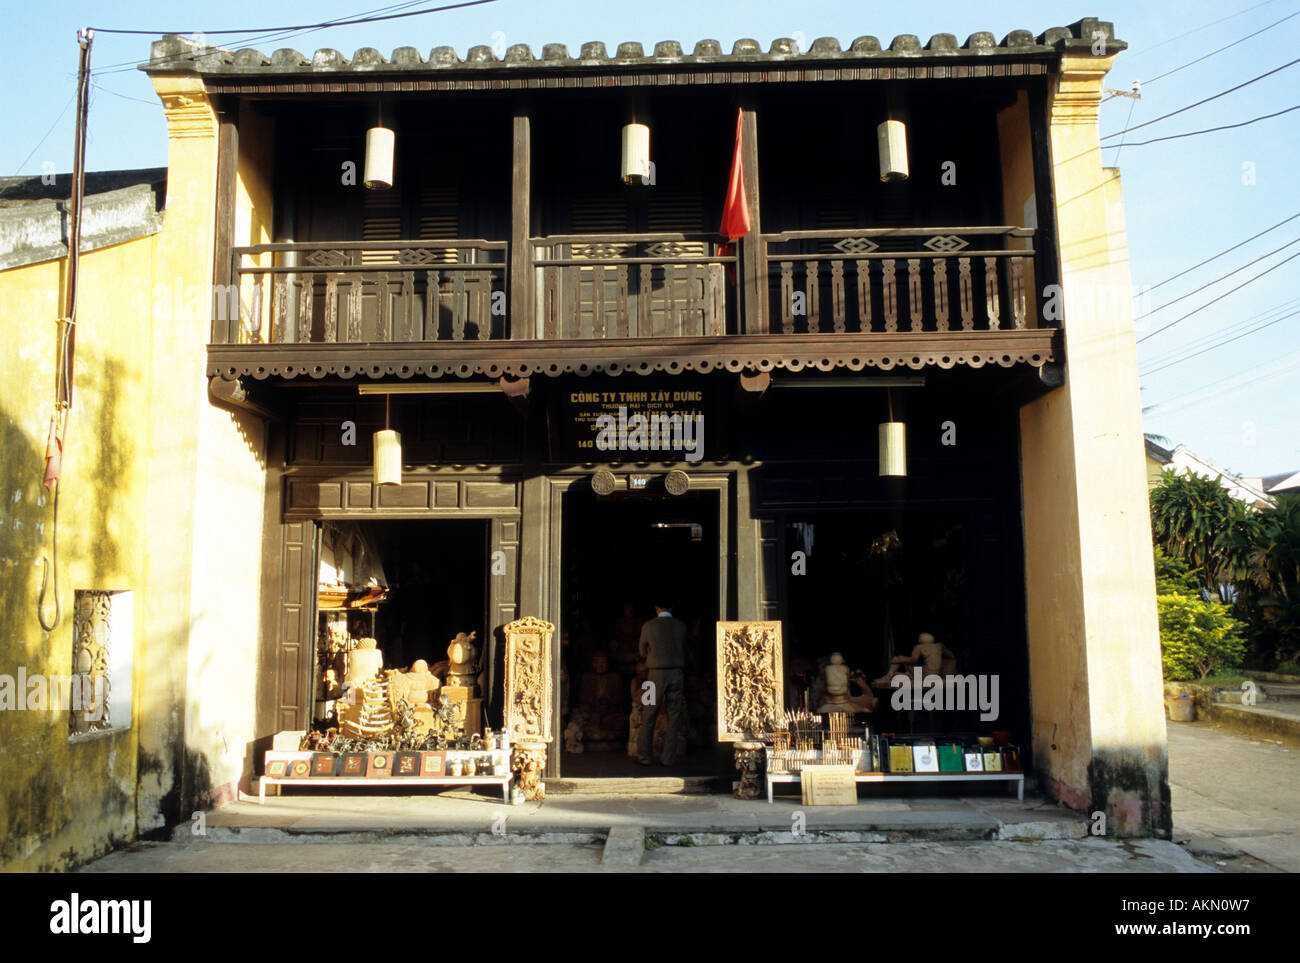 Traditional shophouse  in Tran Phu St, early morning, Hoi An, Viet Nam Stock Photo